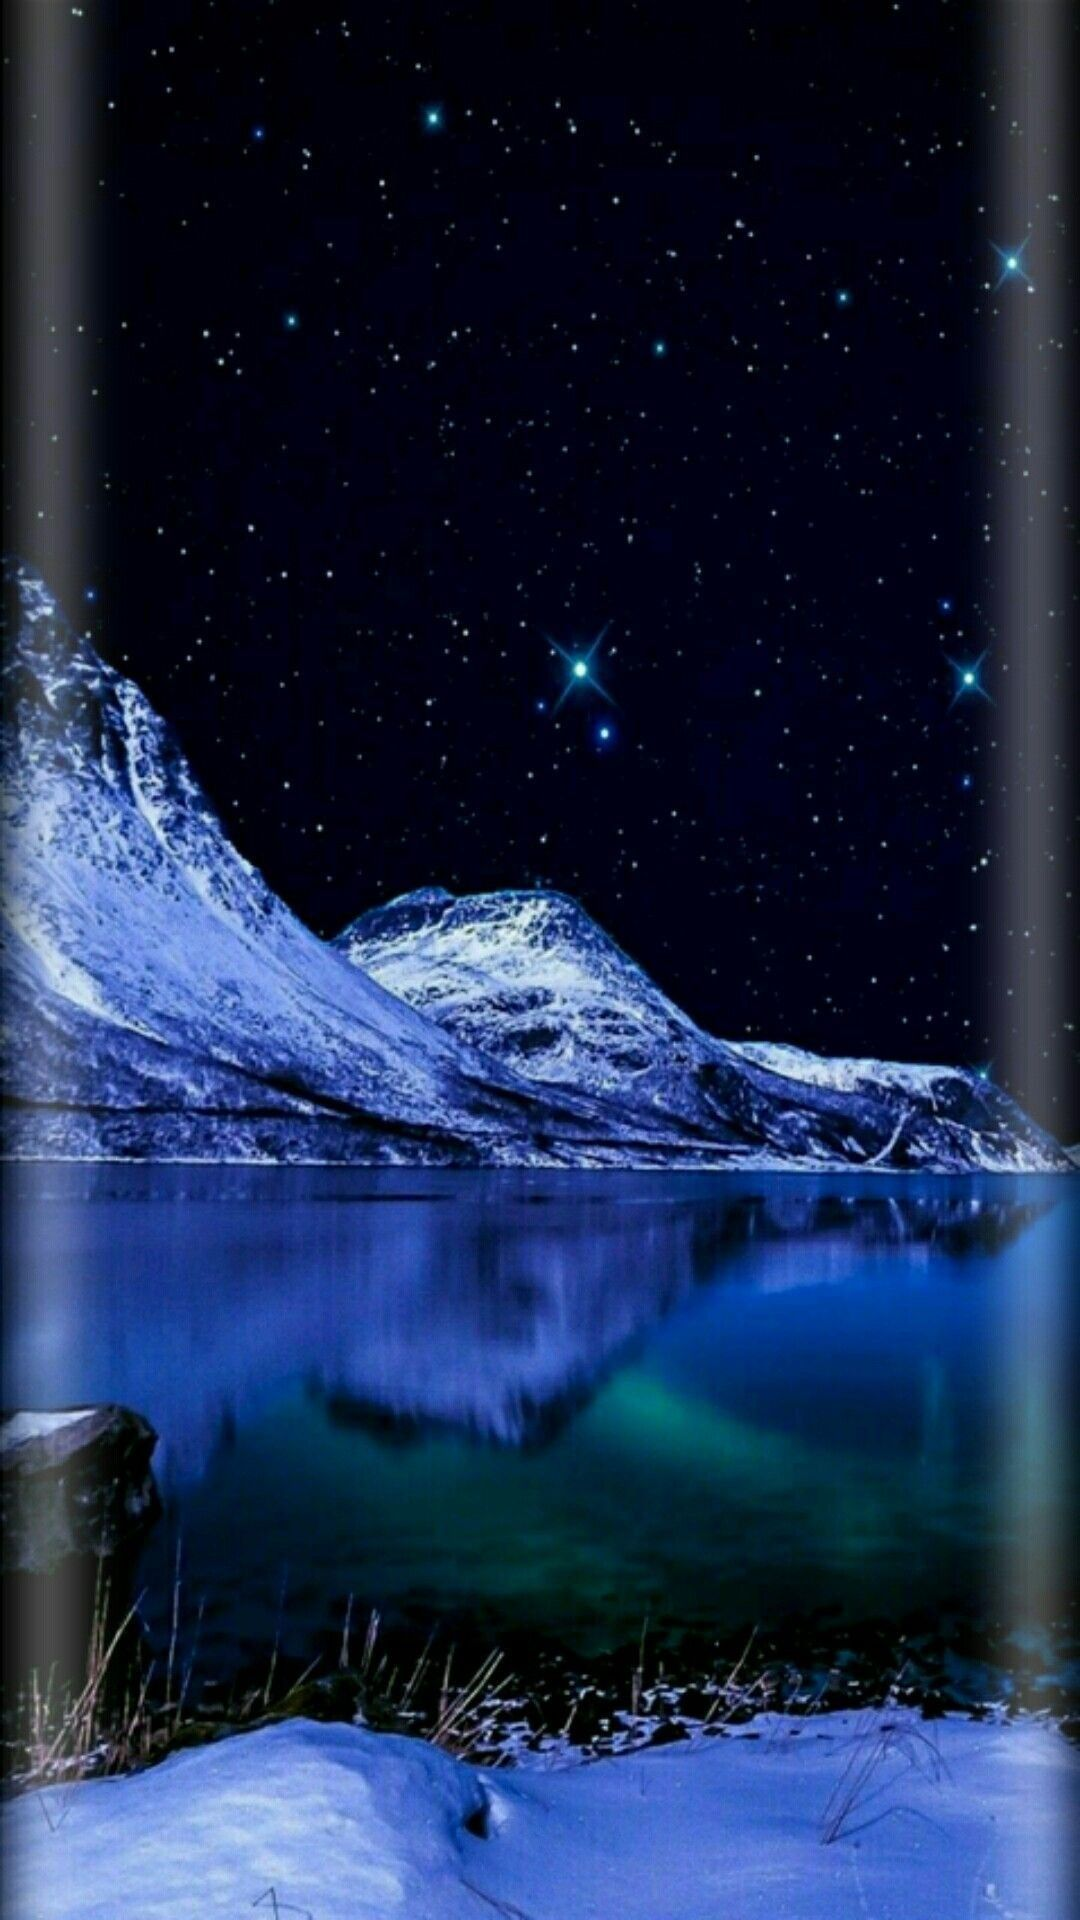 Pin By Nikkladesigns On Wallpaper S Night Sky Wallpaper Scenery Wallpaper Nature Wallpaper